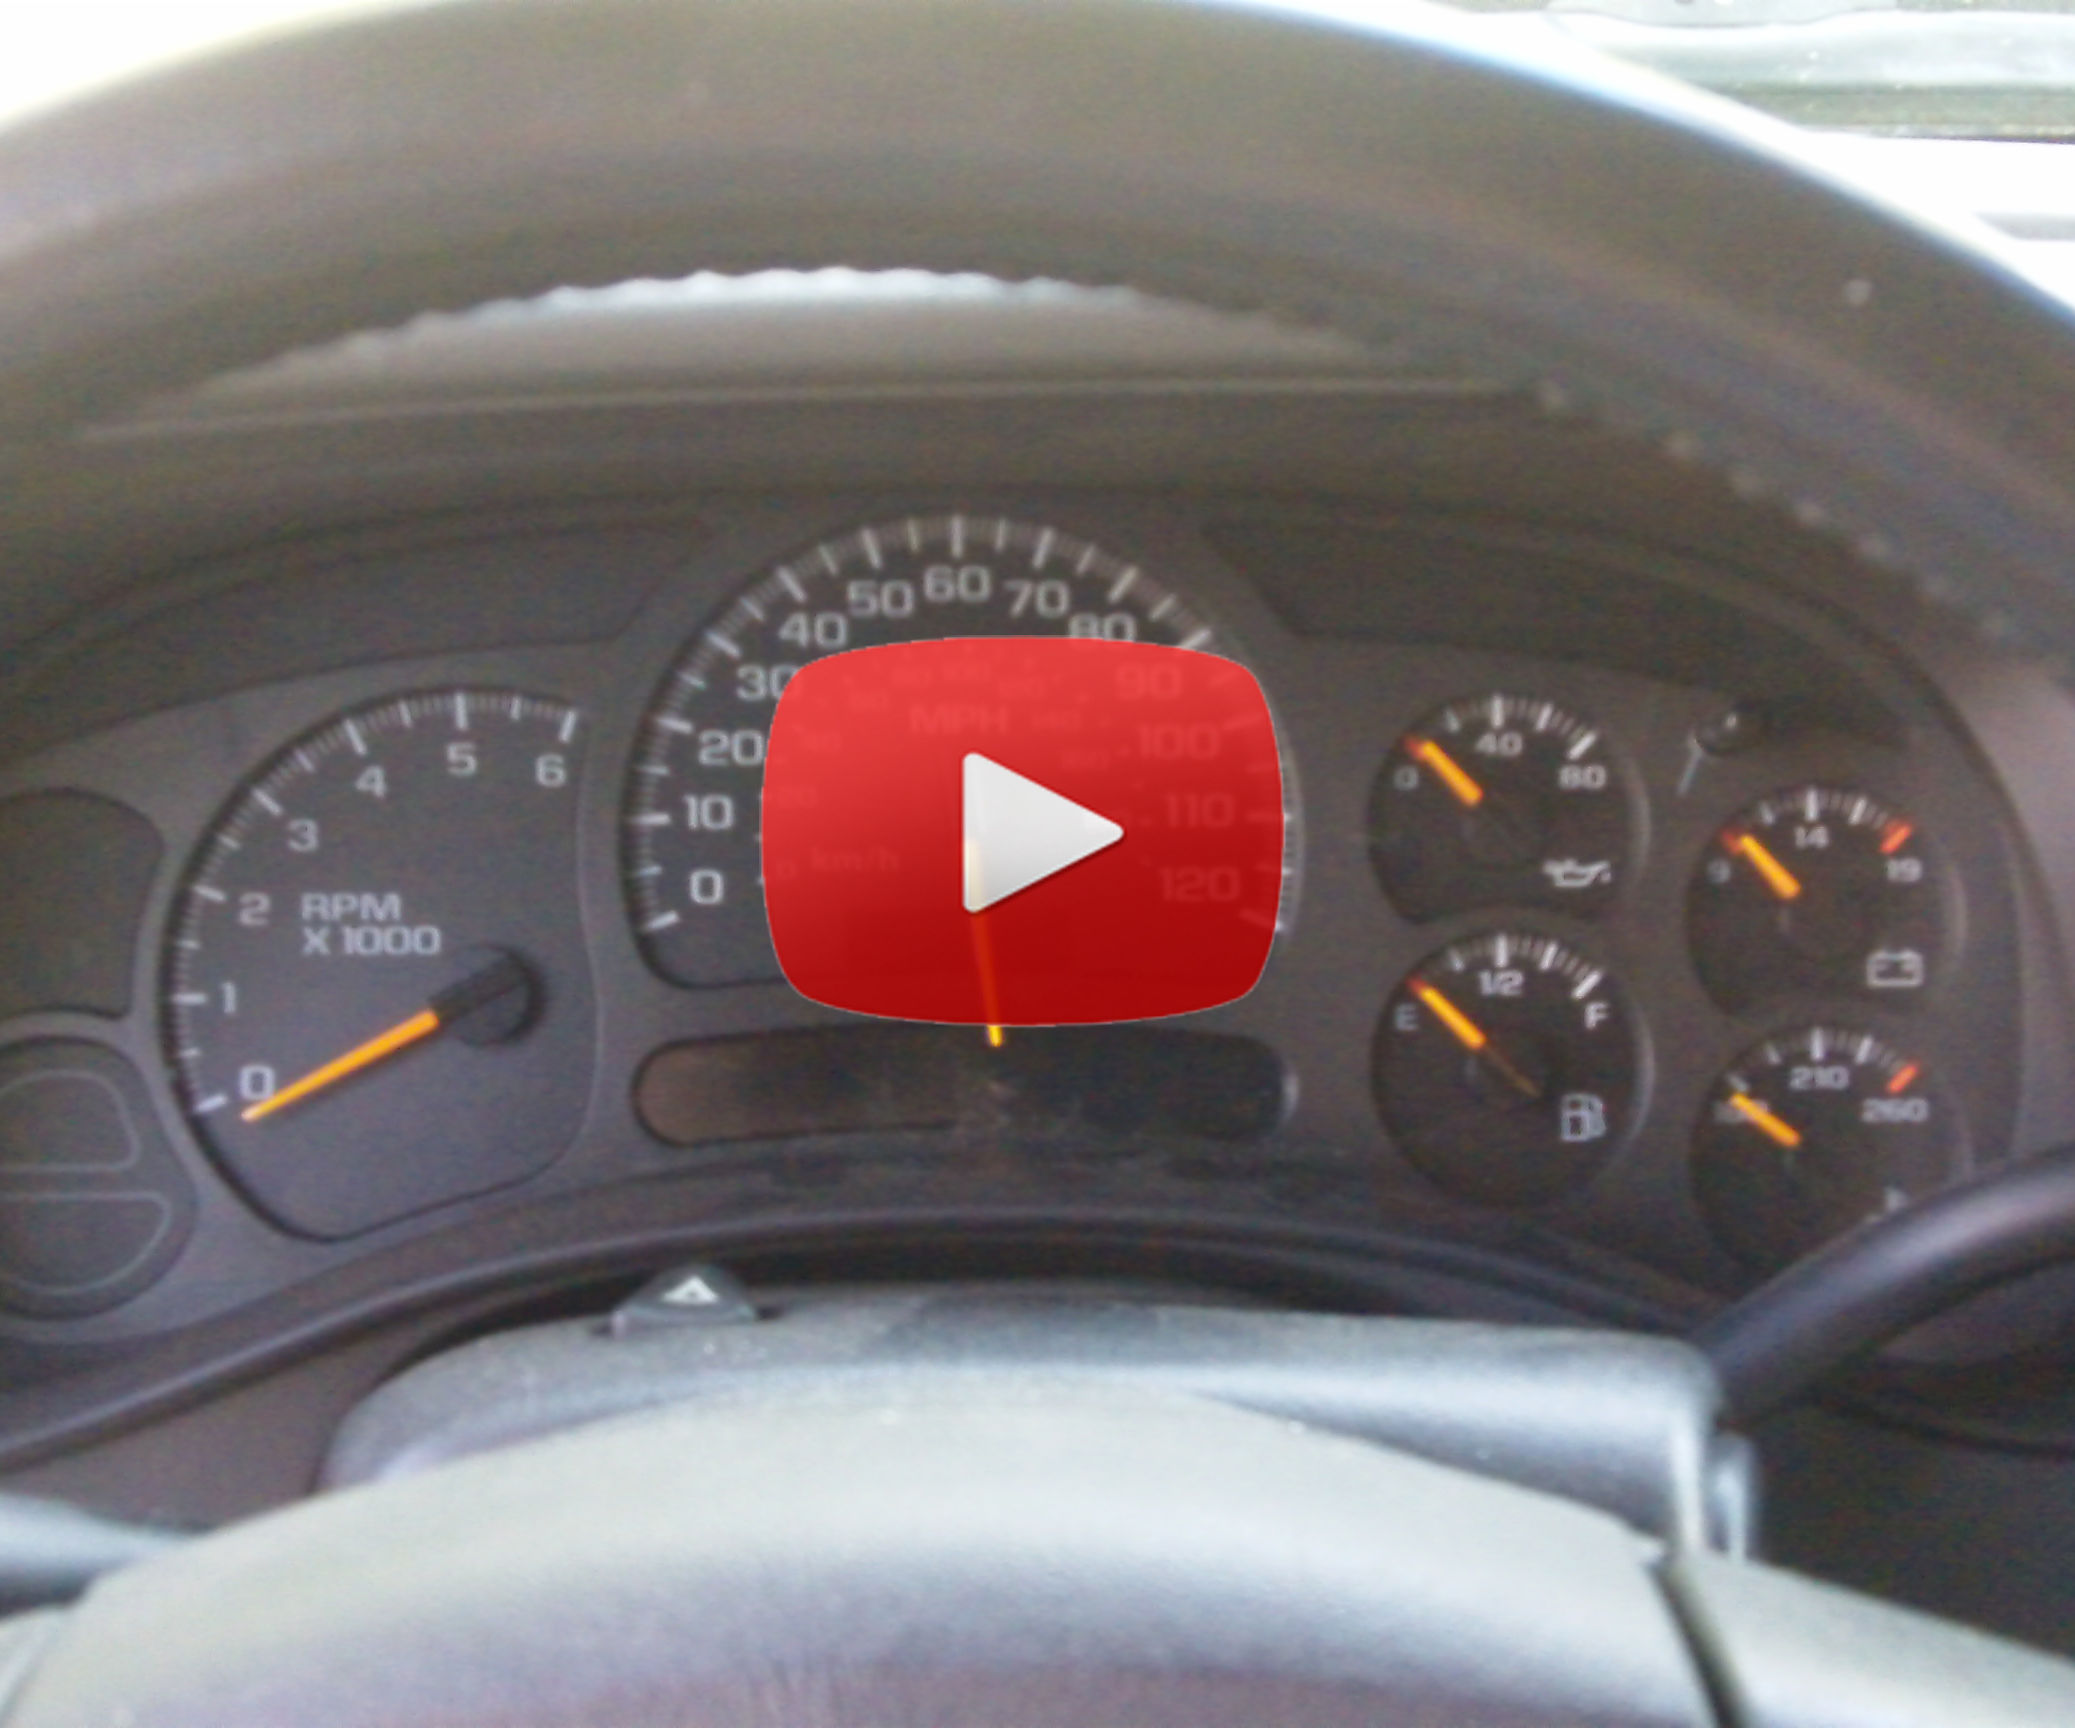 DIY: Finally! How To Repair a GM Instrument Cluster At Home - Speedometer And All Gauges.  For Silverado, Tahoe, Yukon, Suburban, Sierra, H2, Avalanche and other 2003, 2004, 2005 and 2006 Chevrolet GM vehicles.